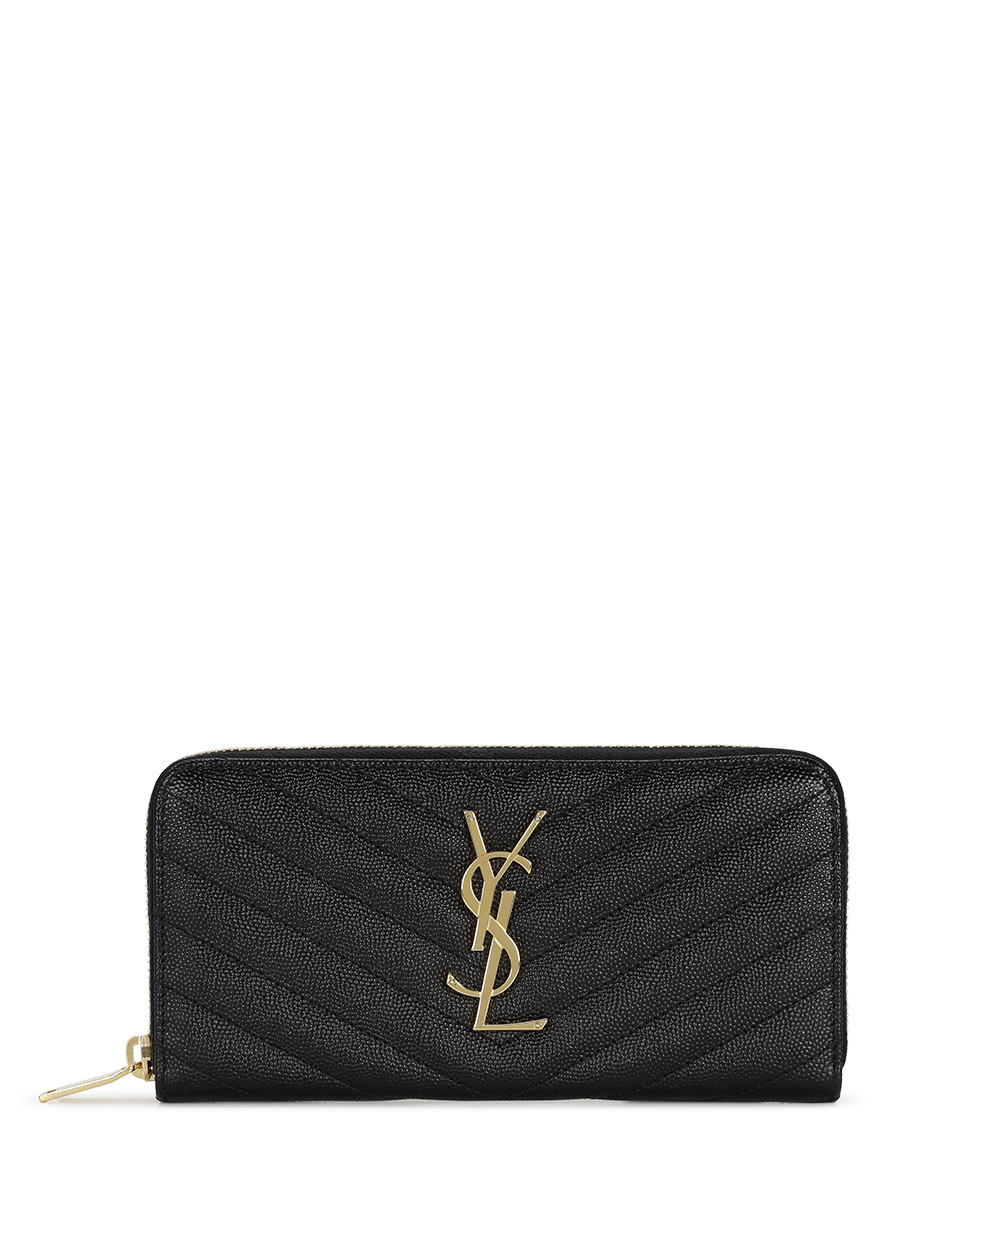 Monogram Zip Around Wallet in Grain de Poudre